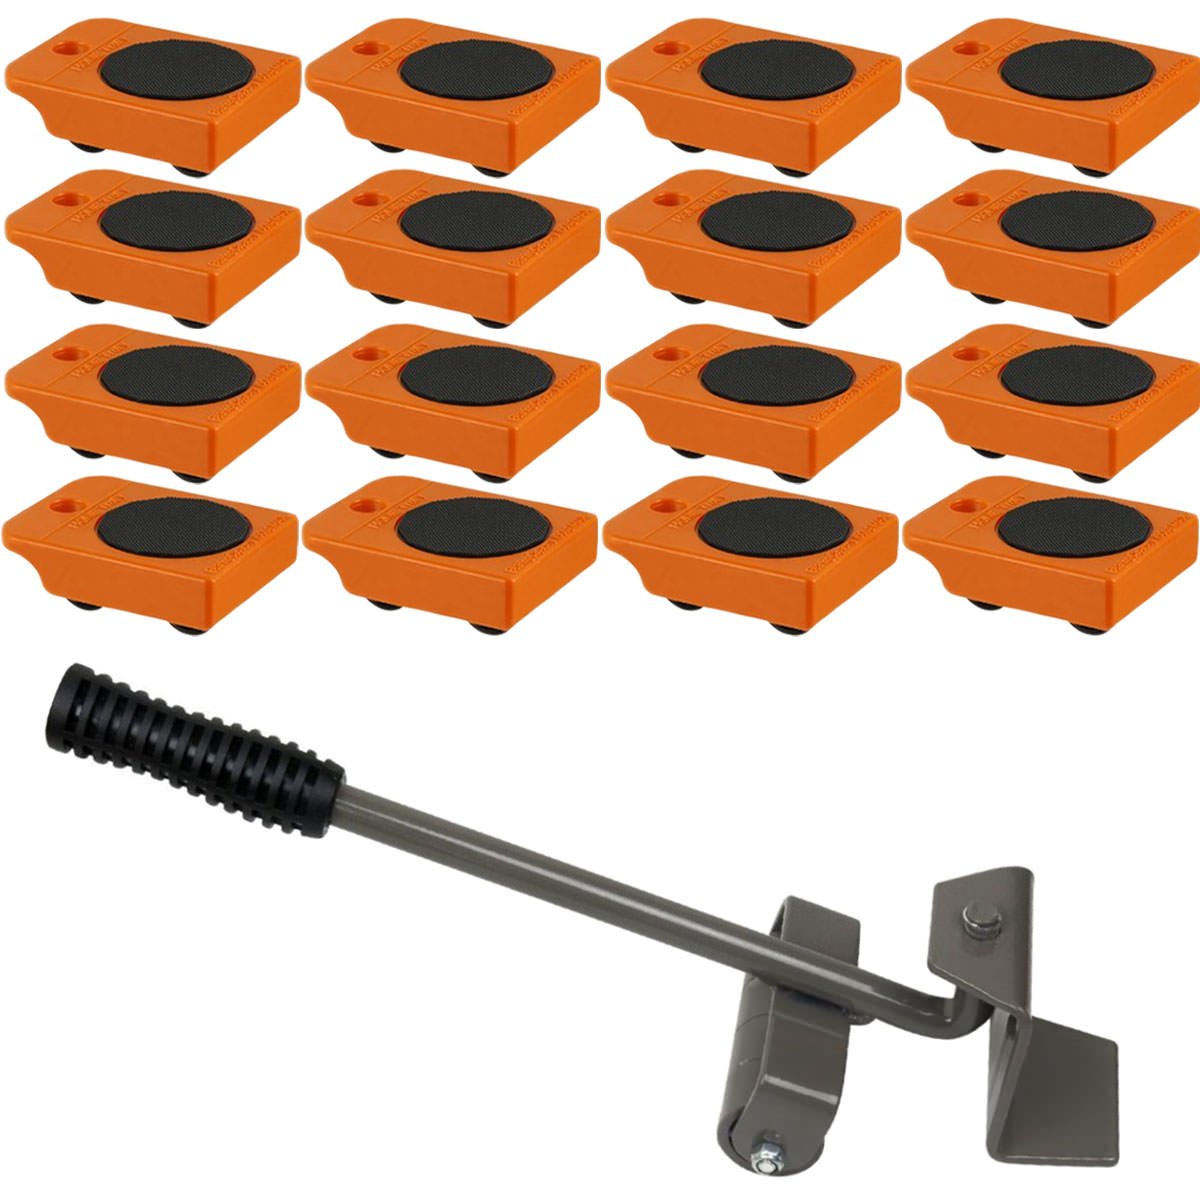 Furniture Lifter with 16pc Mover Rollers, Move Heavy